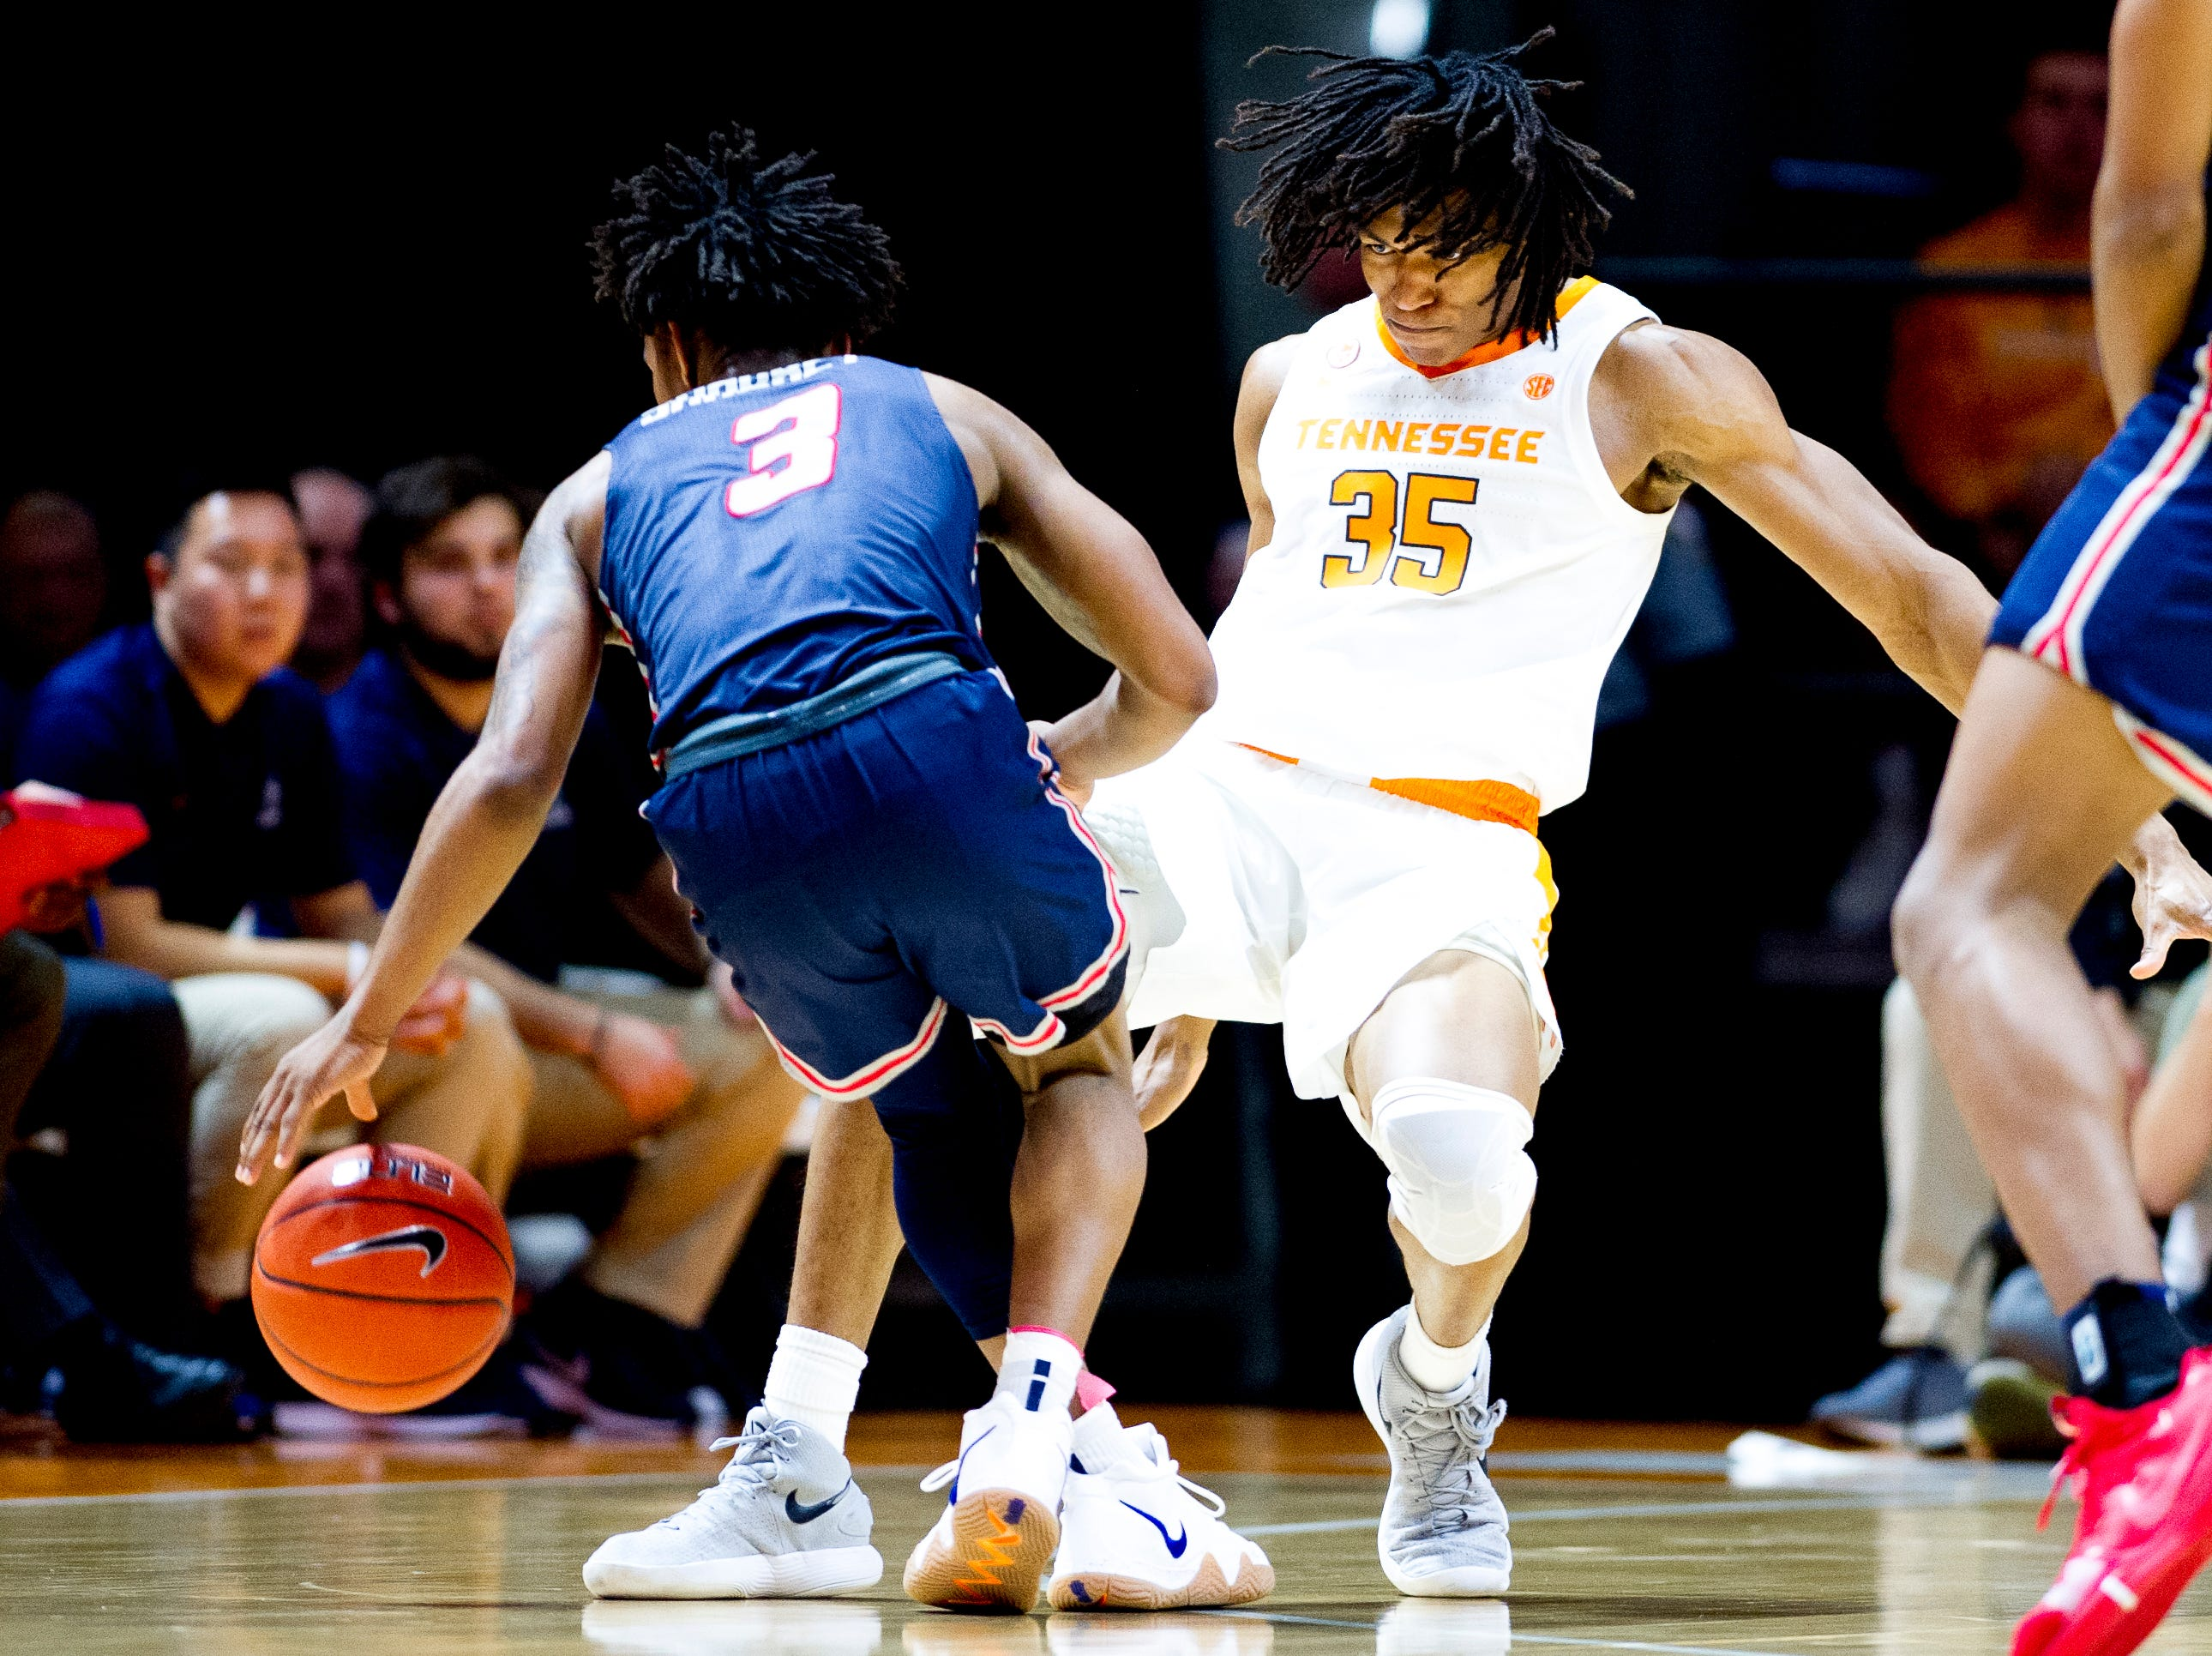 Tennessee guard/forward Yves Pons (35) is knocked over by Samford guard Josh Sharkey (3) during a game between Tennessee and Samford at Thompson-Boling Arena in Knoxville, Tennessee on Wednesday, December 19, 2018.